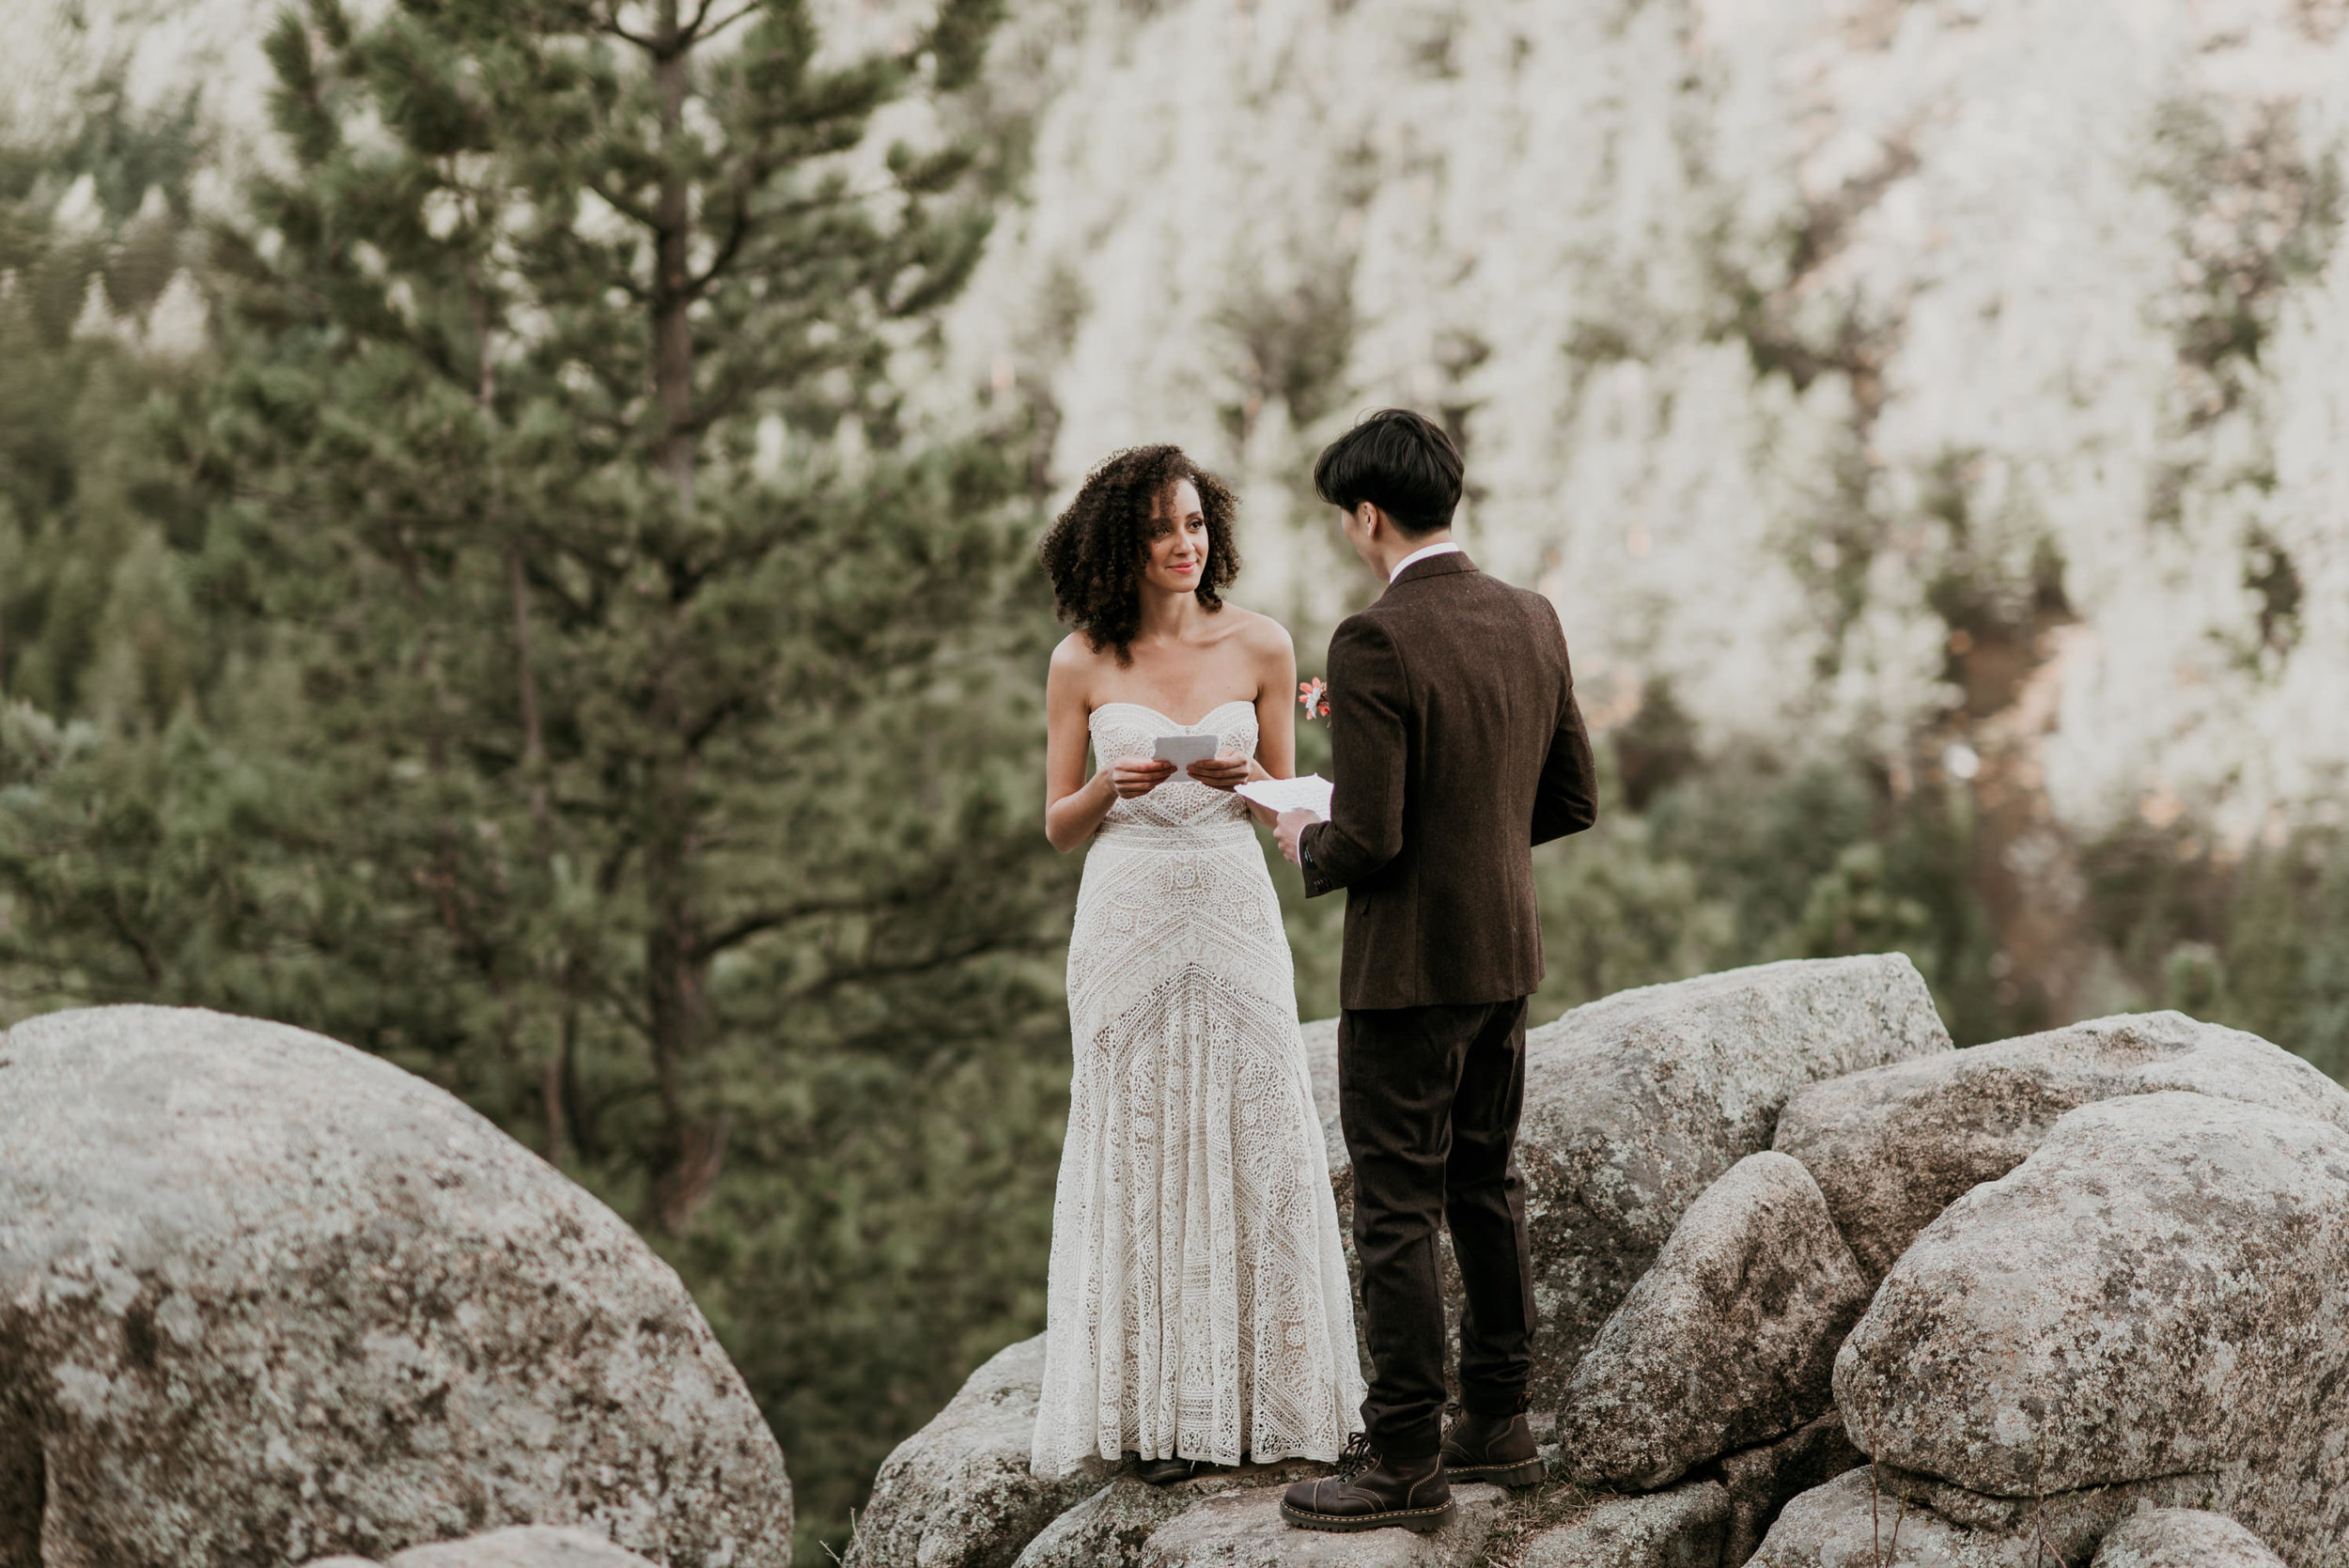 Reading vows on a mountain at sunrise, the bride is wearing rue de seine and the groom is in a dark brown wool tweed suit.